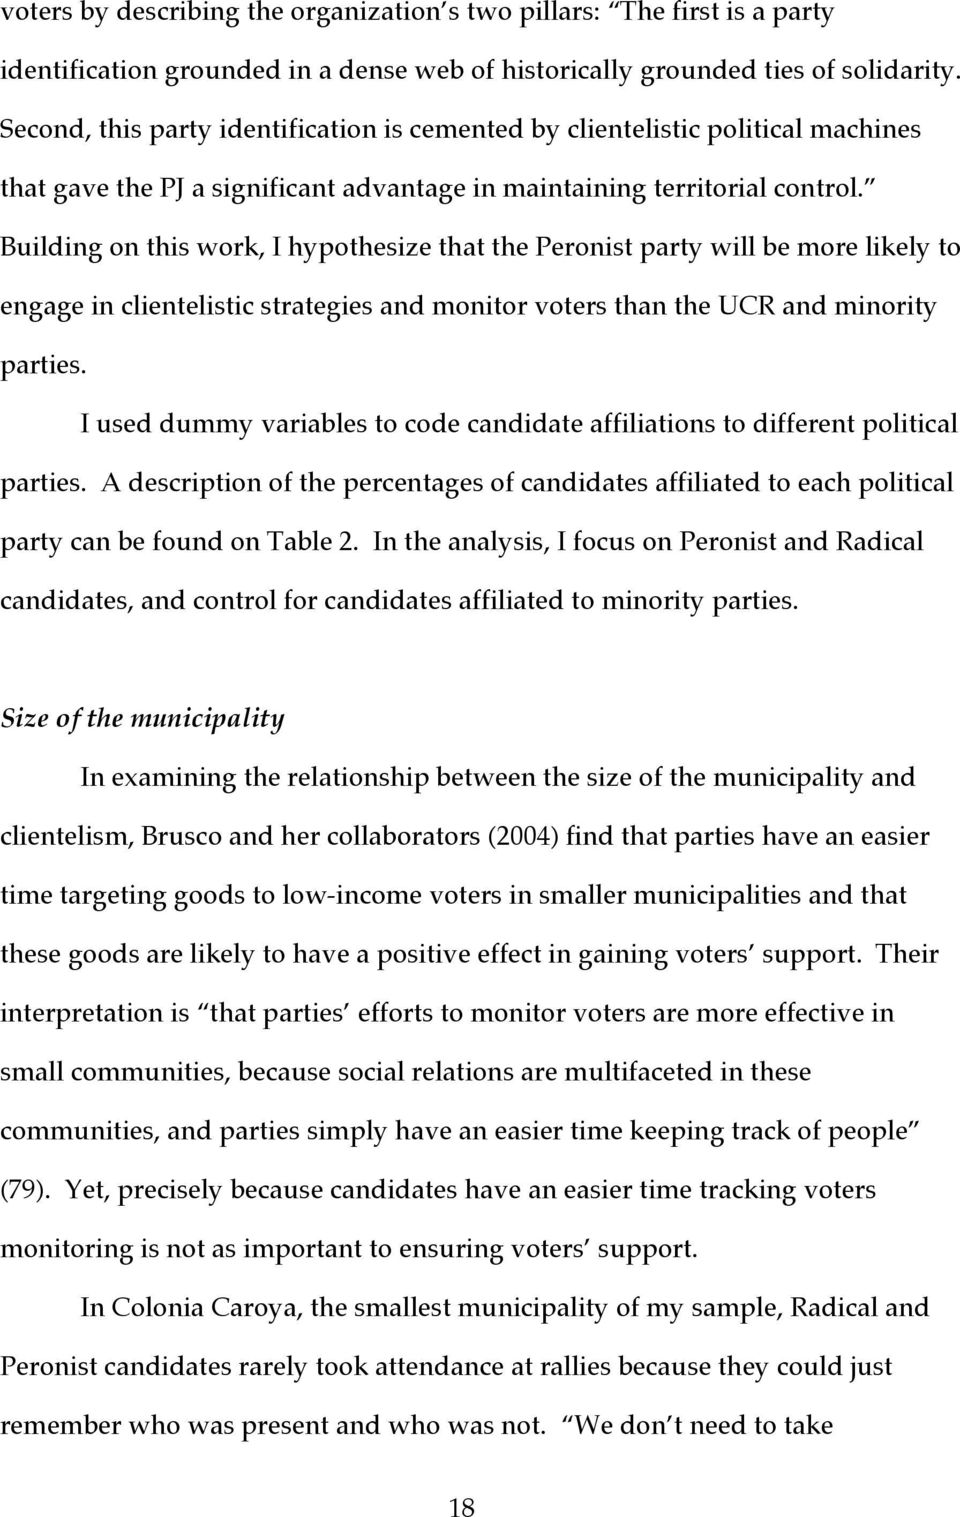 Building on this work, I hypothesize that the Peronist party will be more likely to engage in clientelistic strategies and monitor voters than the UCR and minority parties.